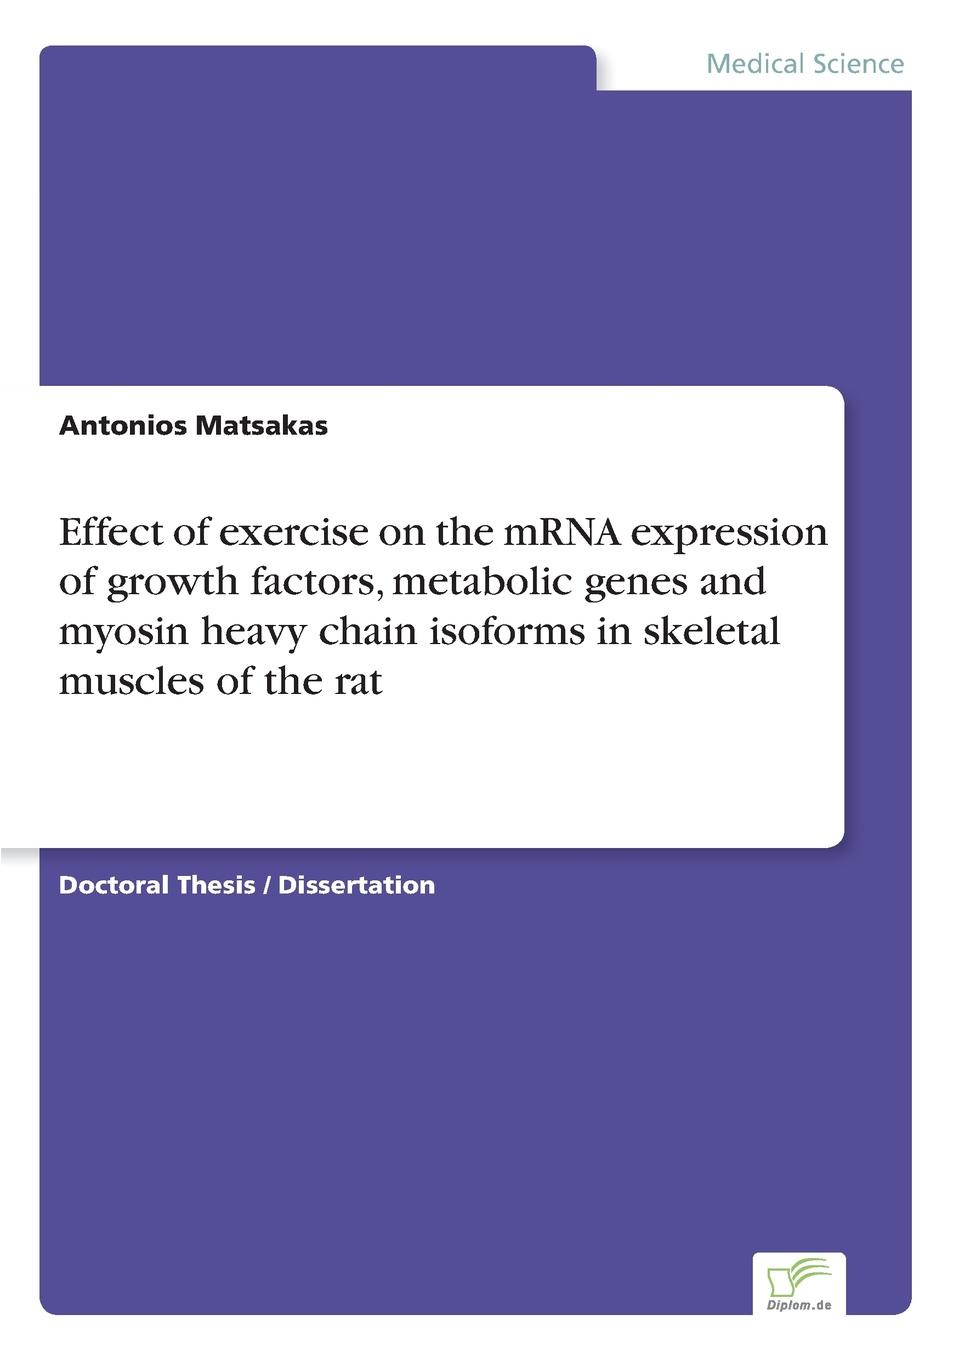 Antonios Matsakas Effect of exercise on the mRNA expression of growth factors, metabolic genes and myosin heavy chain isoforms in skeletal muscles of the rat gary matthews g cellular physiology of nerve and muscle